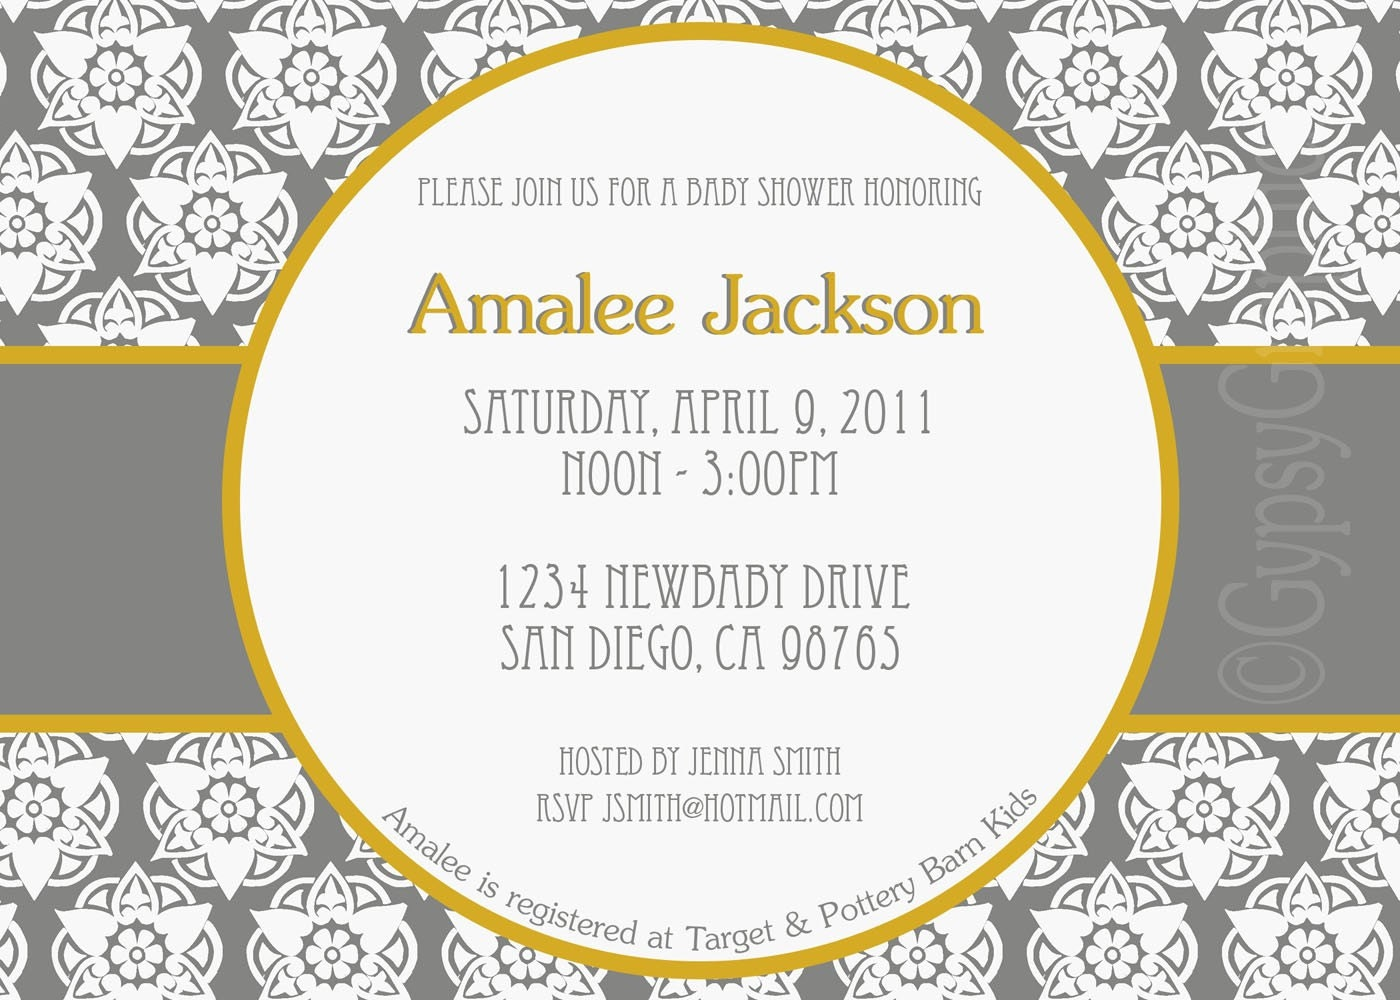 Printable Moroccan Inspired Invitation for birthday party bridal shower baby shower wedding graduation announcement you pick colors